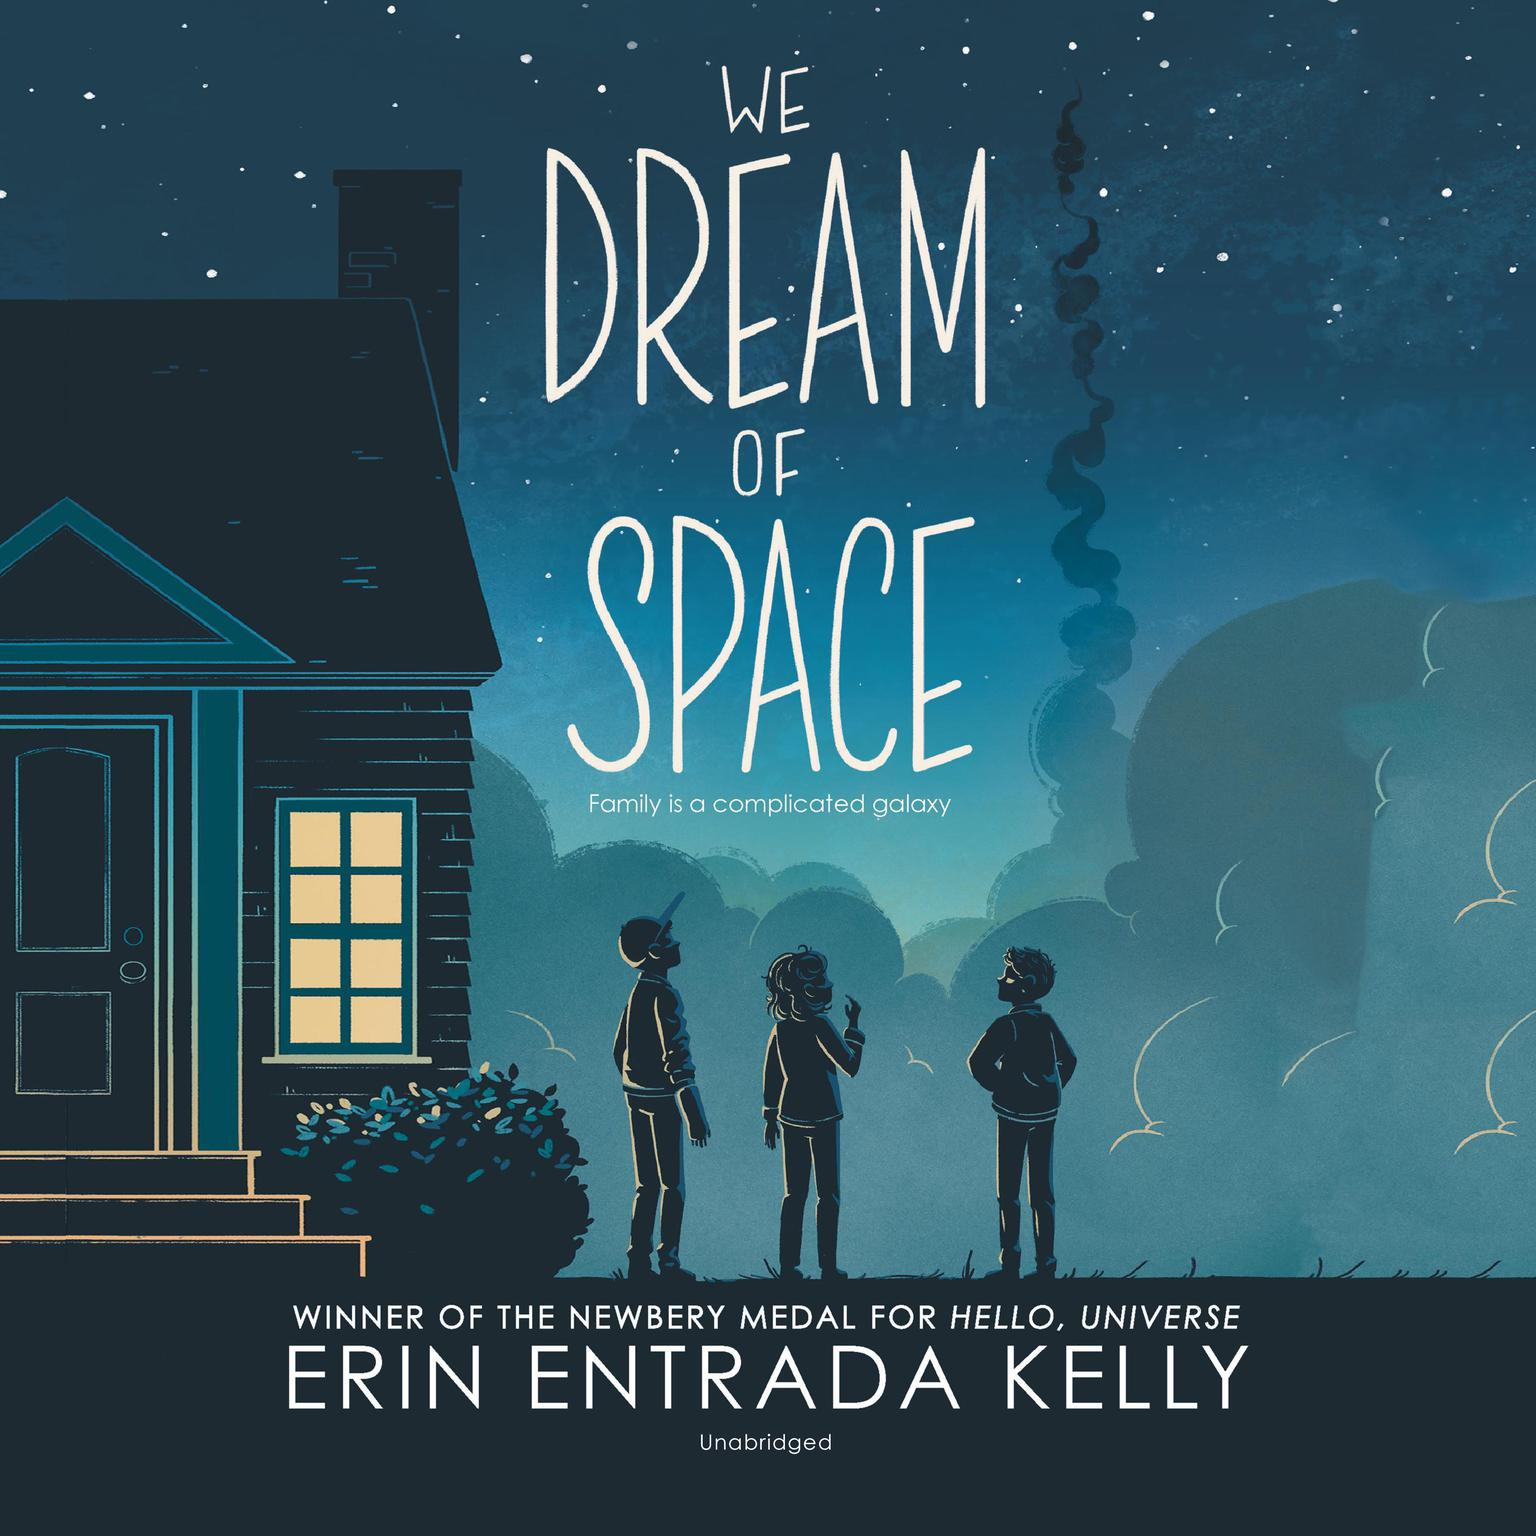 We Dream of Space by Erin Entrada Kelly | Superior Young Adult Fiction | Audiobook Review